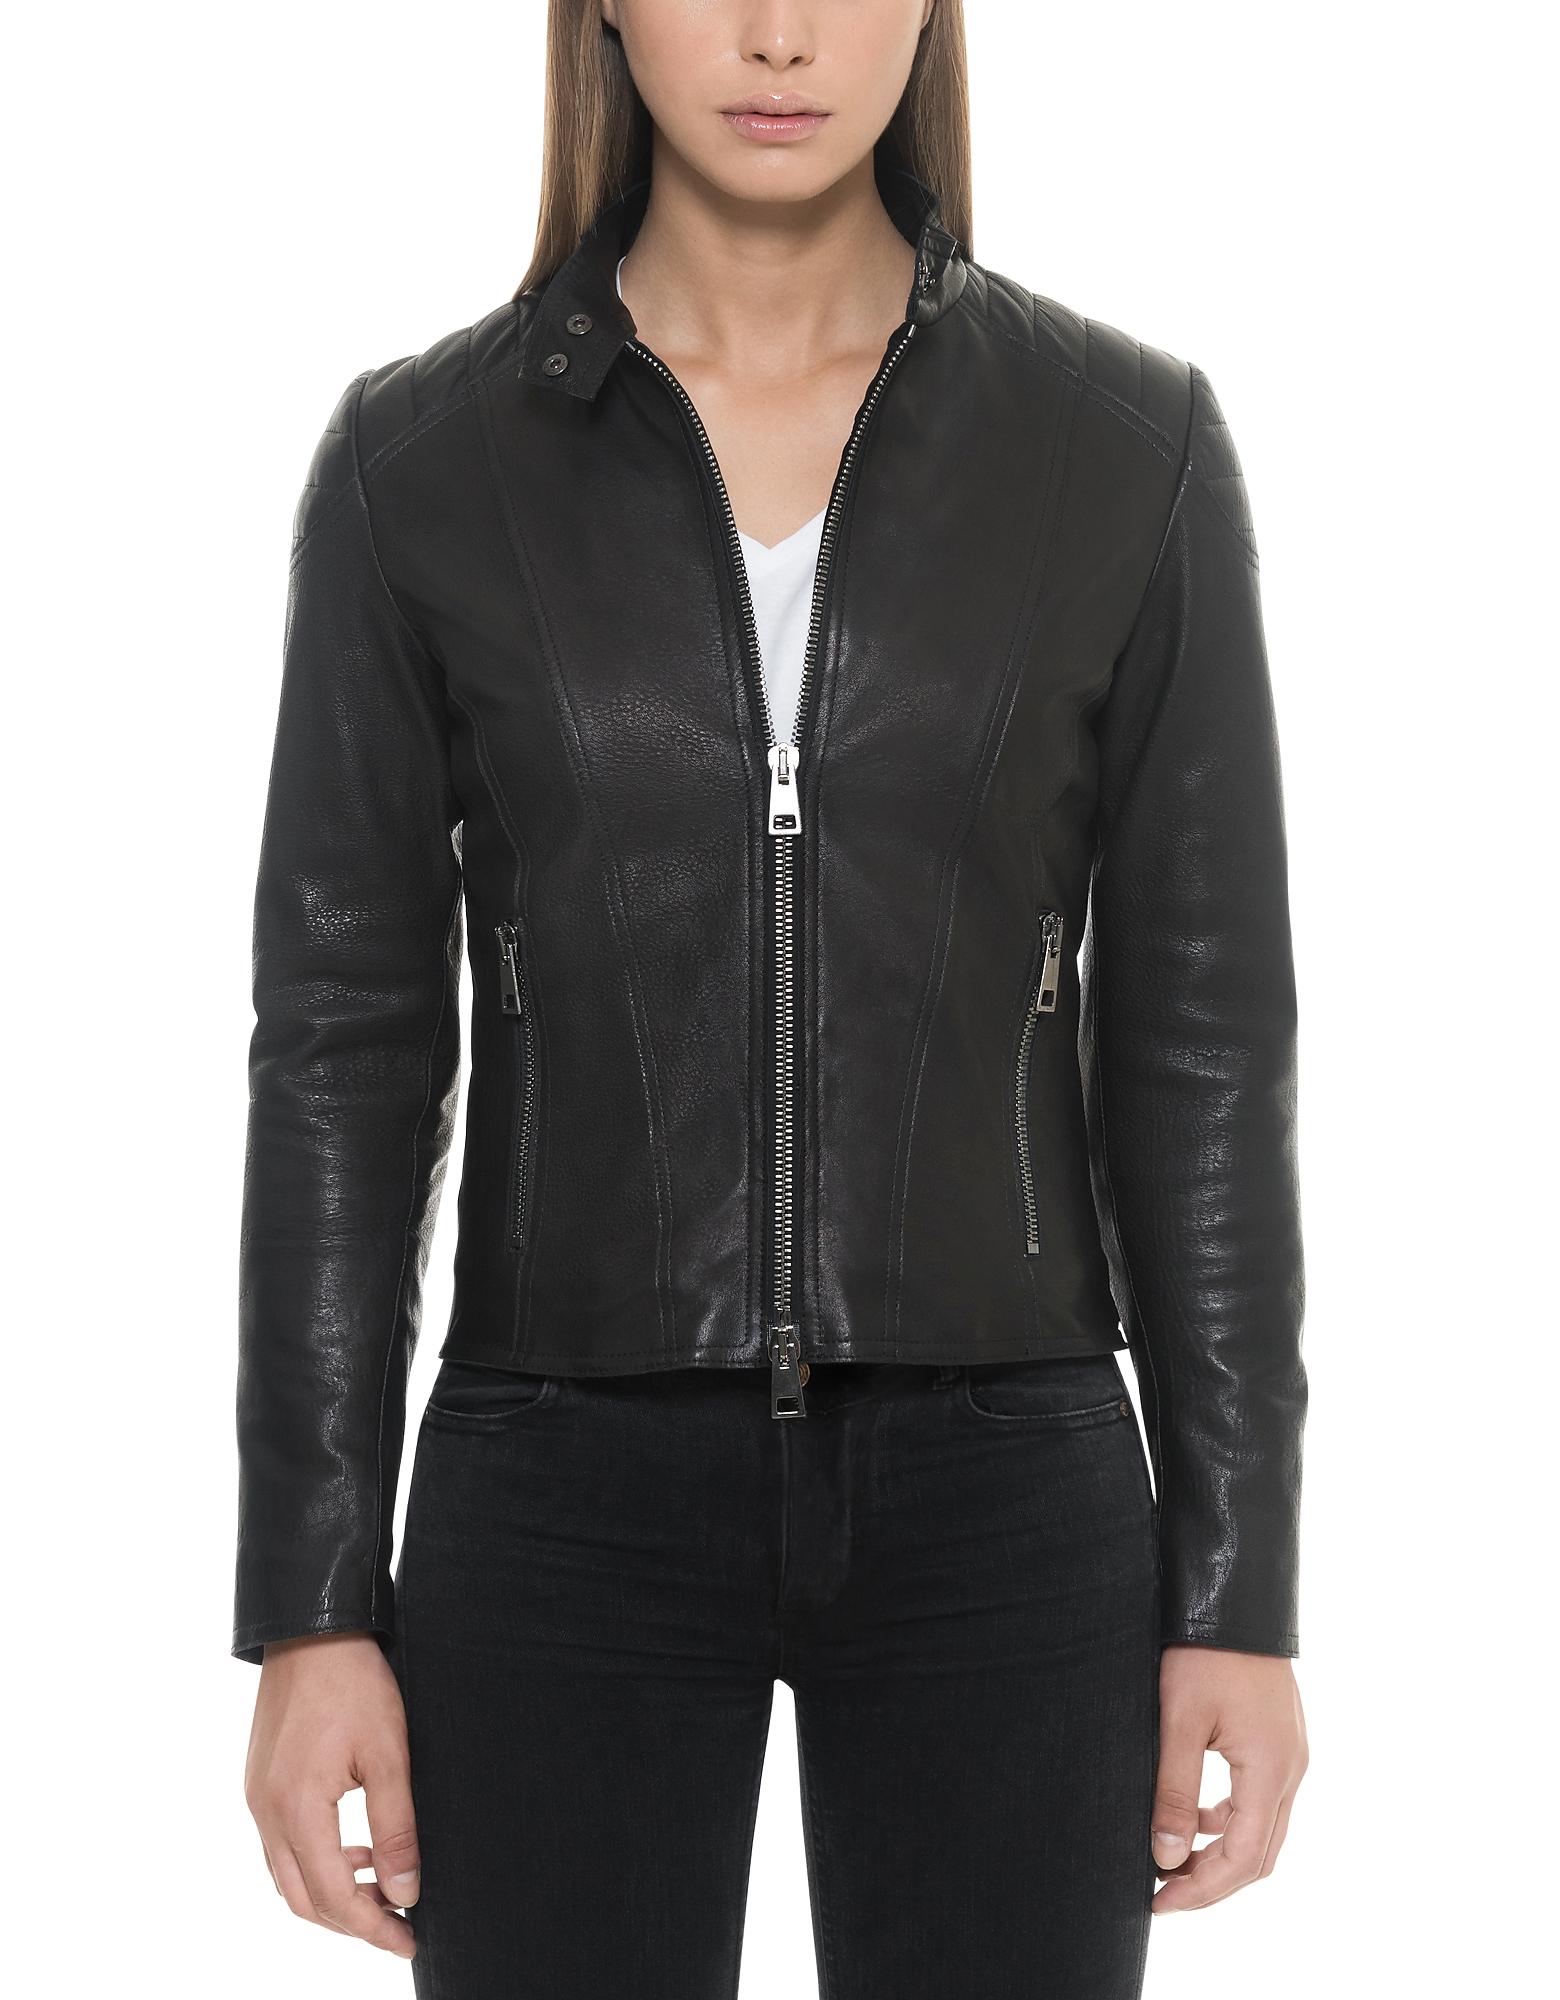 Forzieri Leather Jackets, Black Padded Leather Women's Zippered Jacket